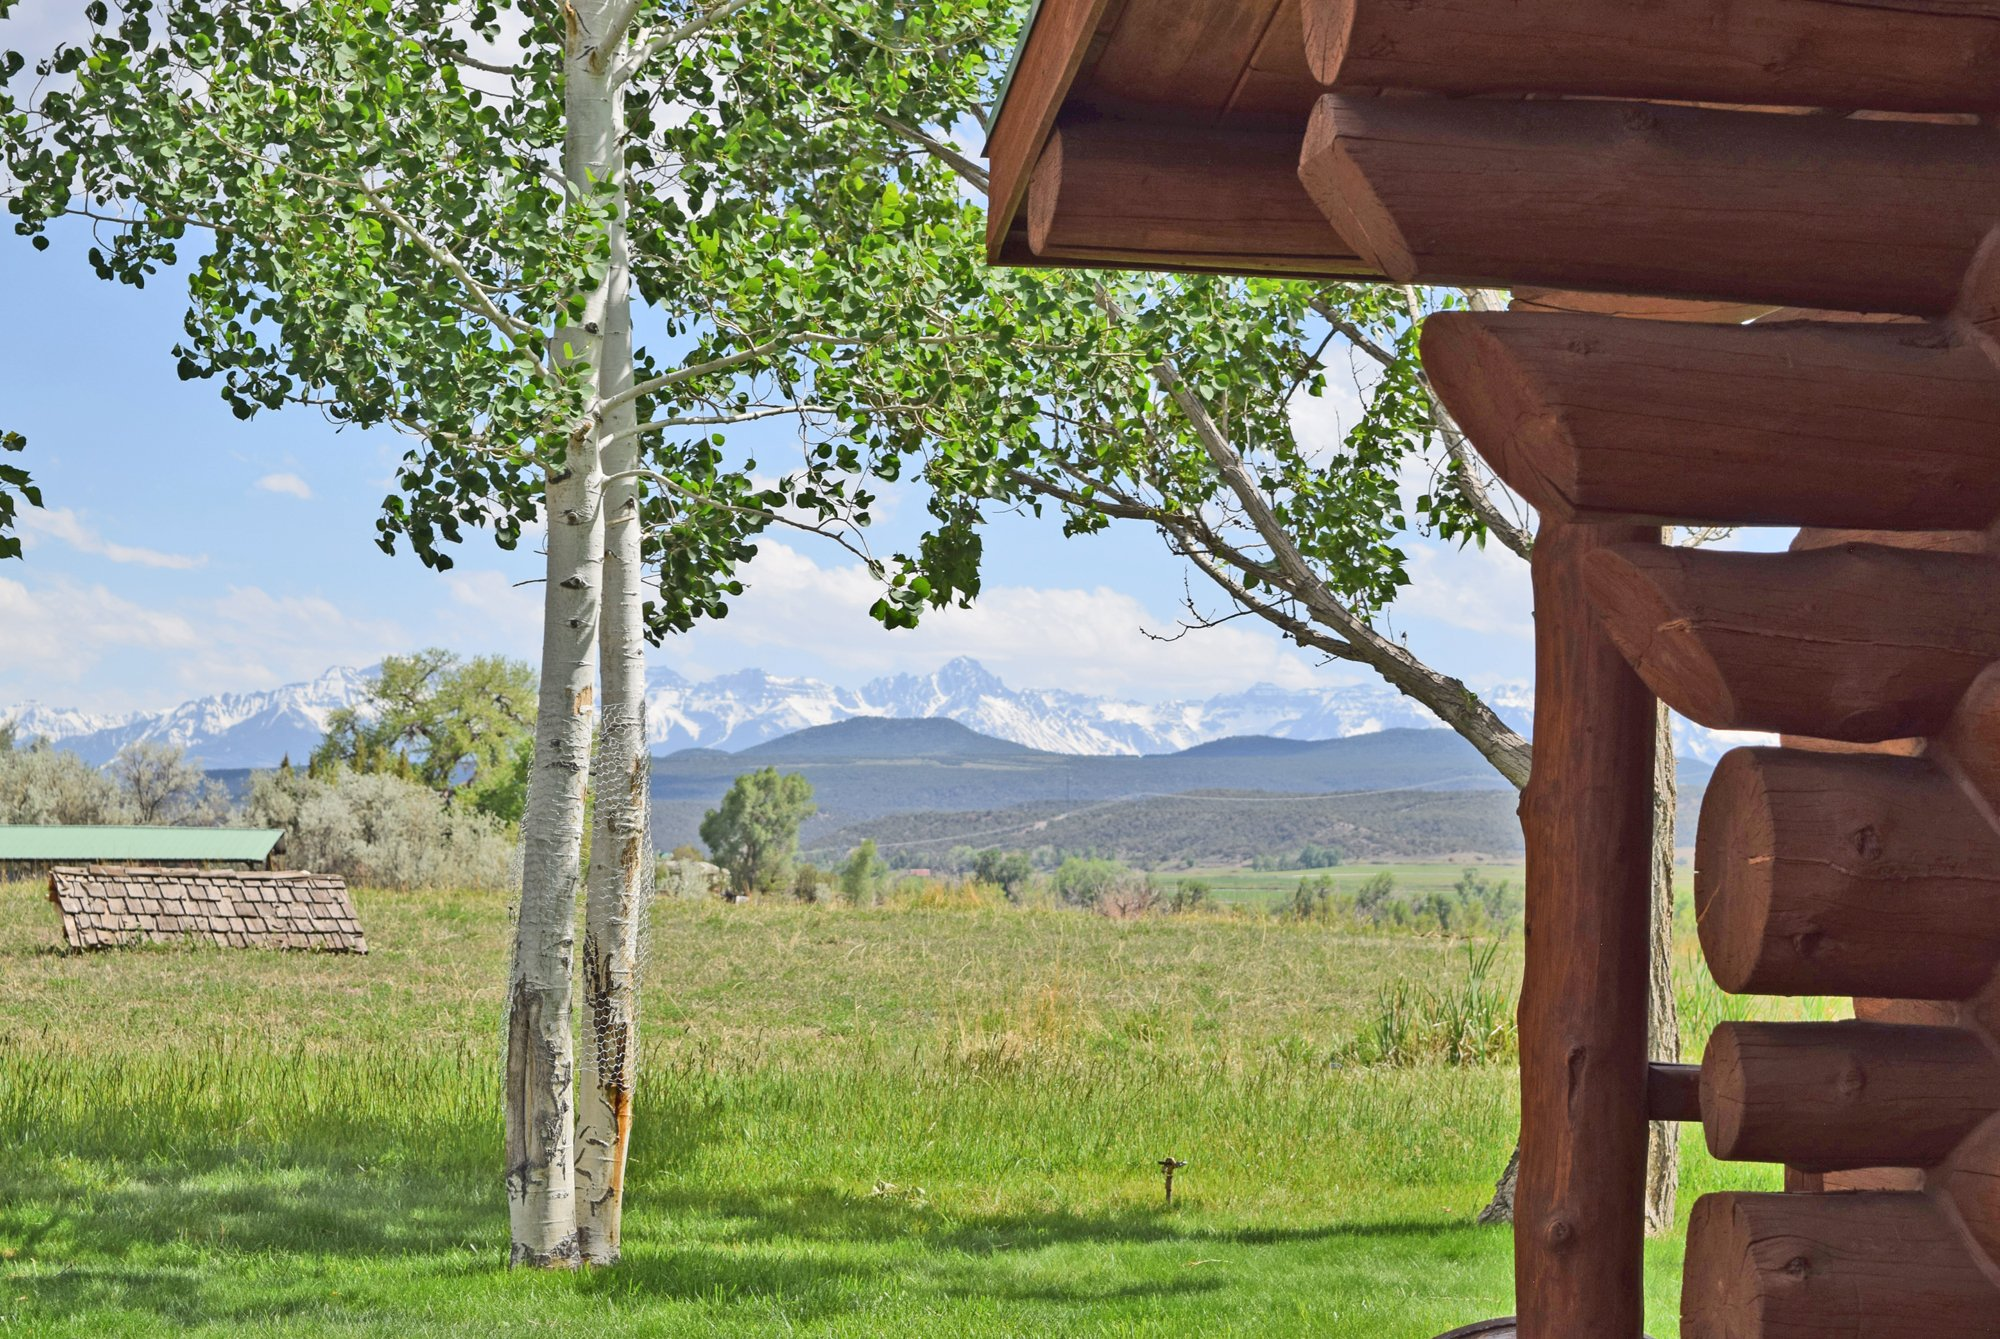 San Juan Views from the Home - 21770 Uncompahgre Rd Montrose, CO 81403 - Atha Team Country Real Estate